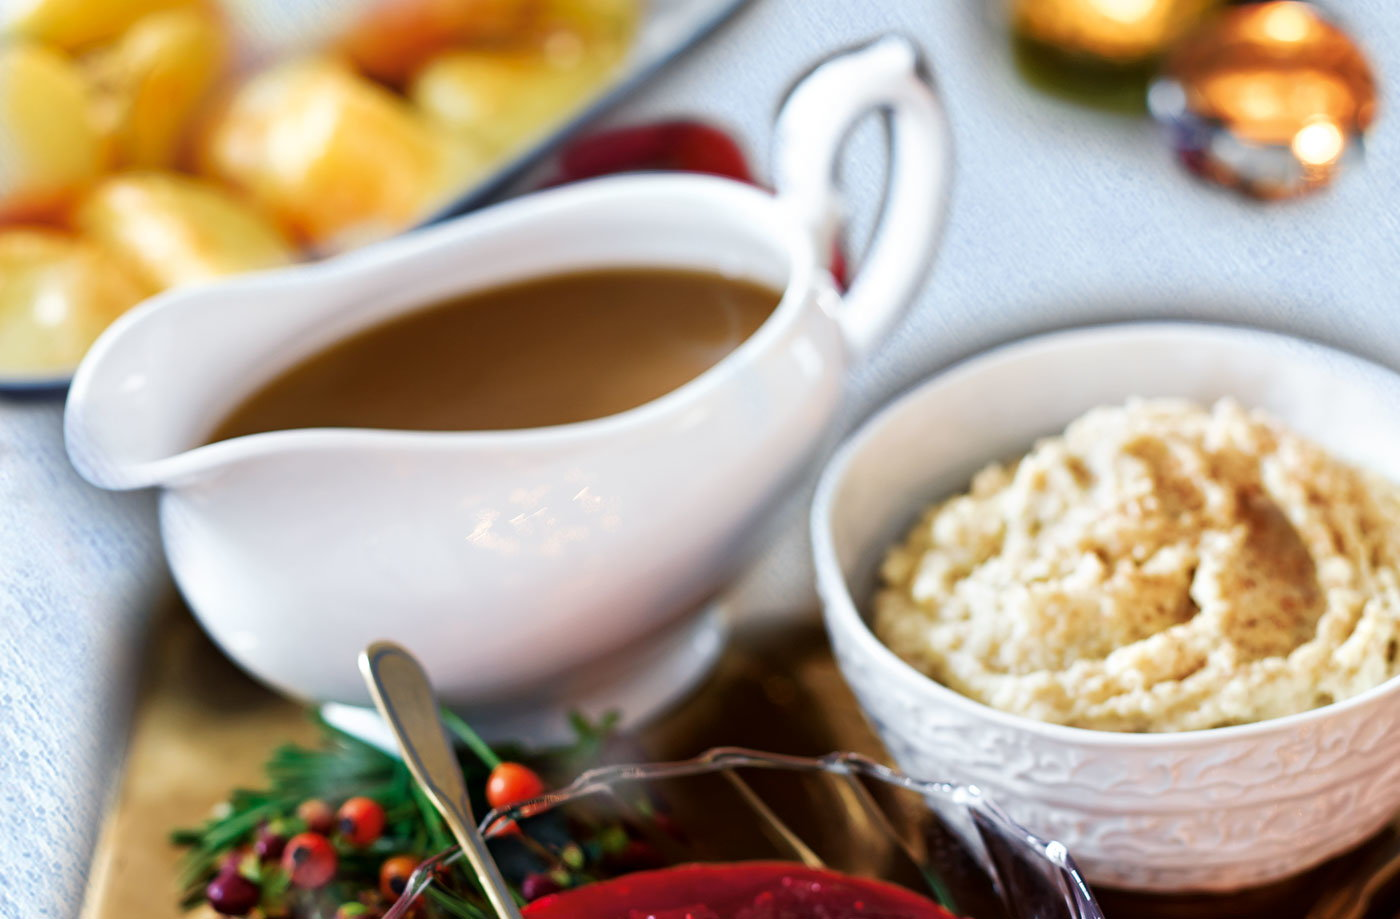 Sherry and redcurrant gravy recipe